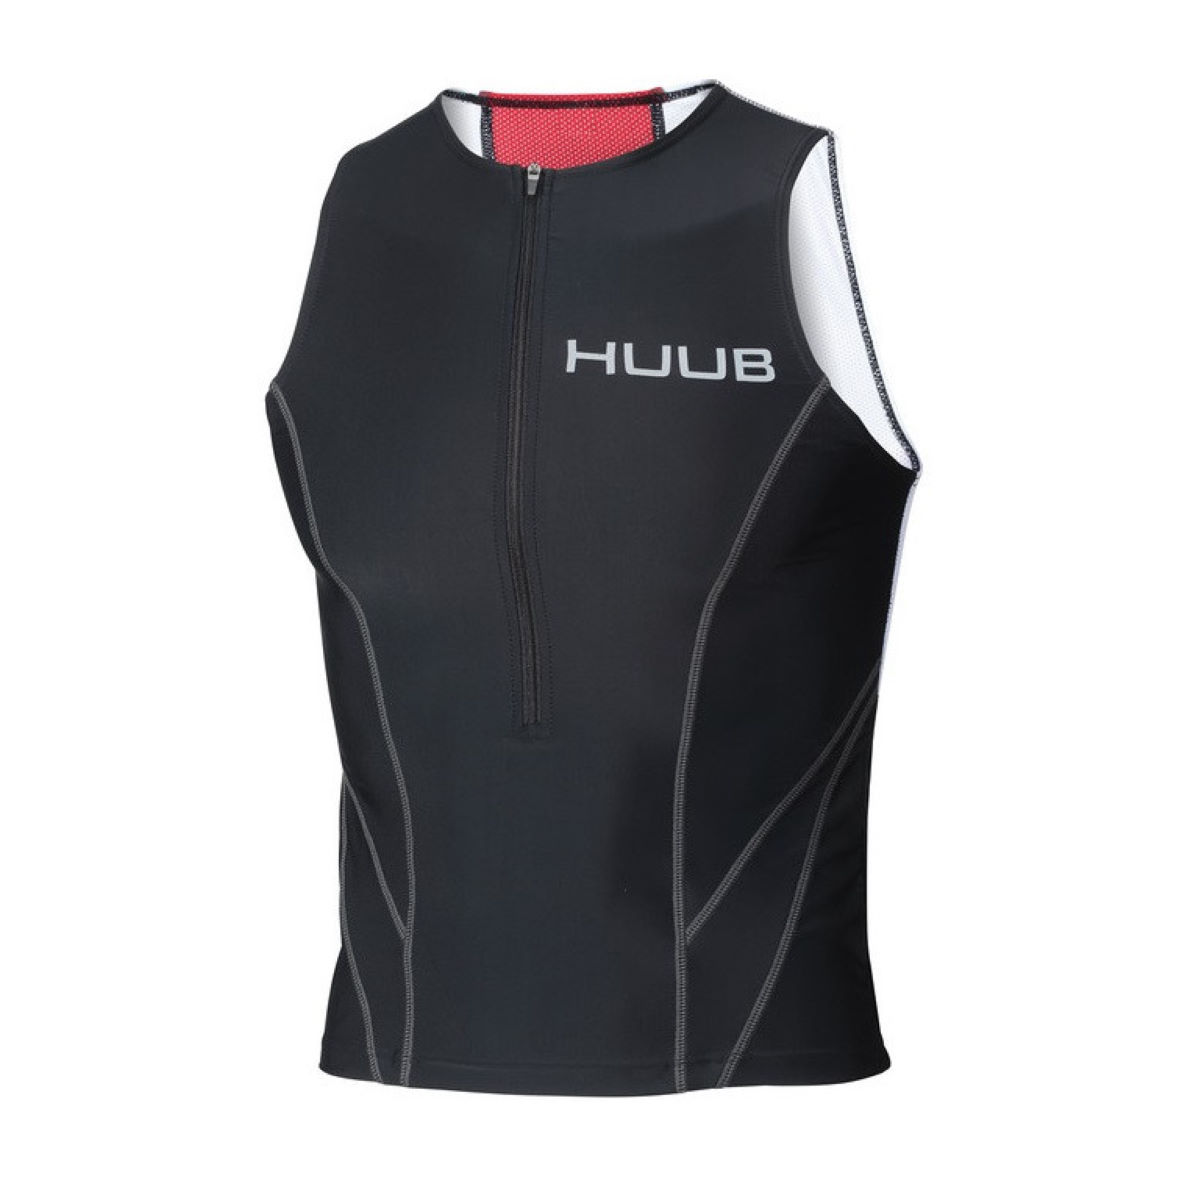 HUB Apparel Men's Essential Tri Top - Small Black | Tri Tops